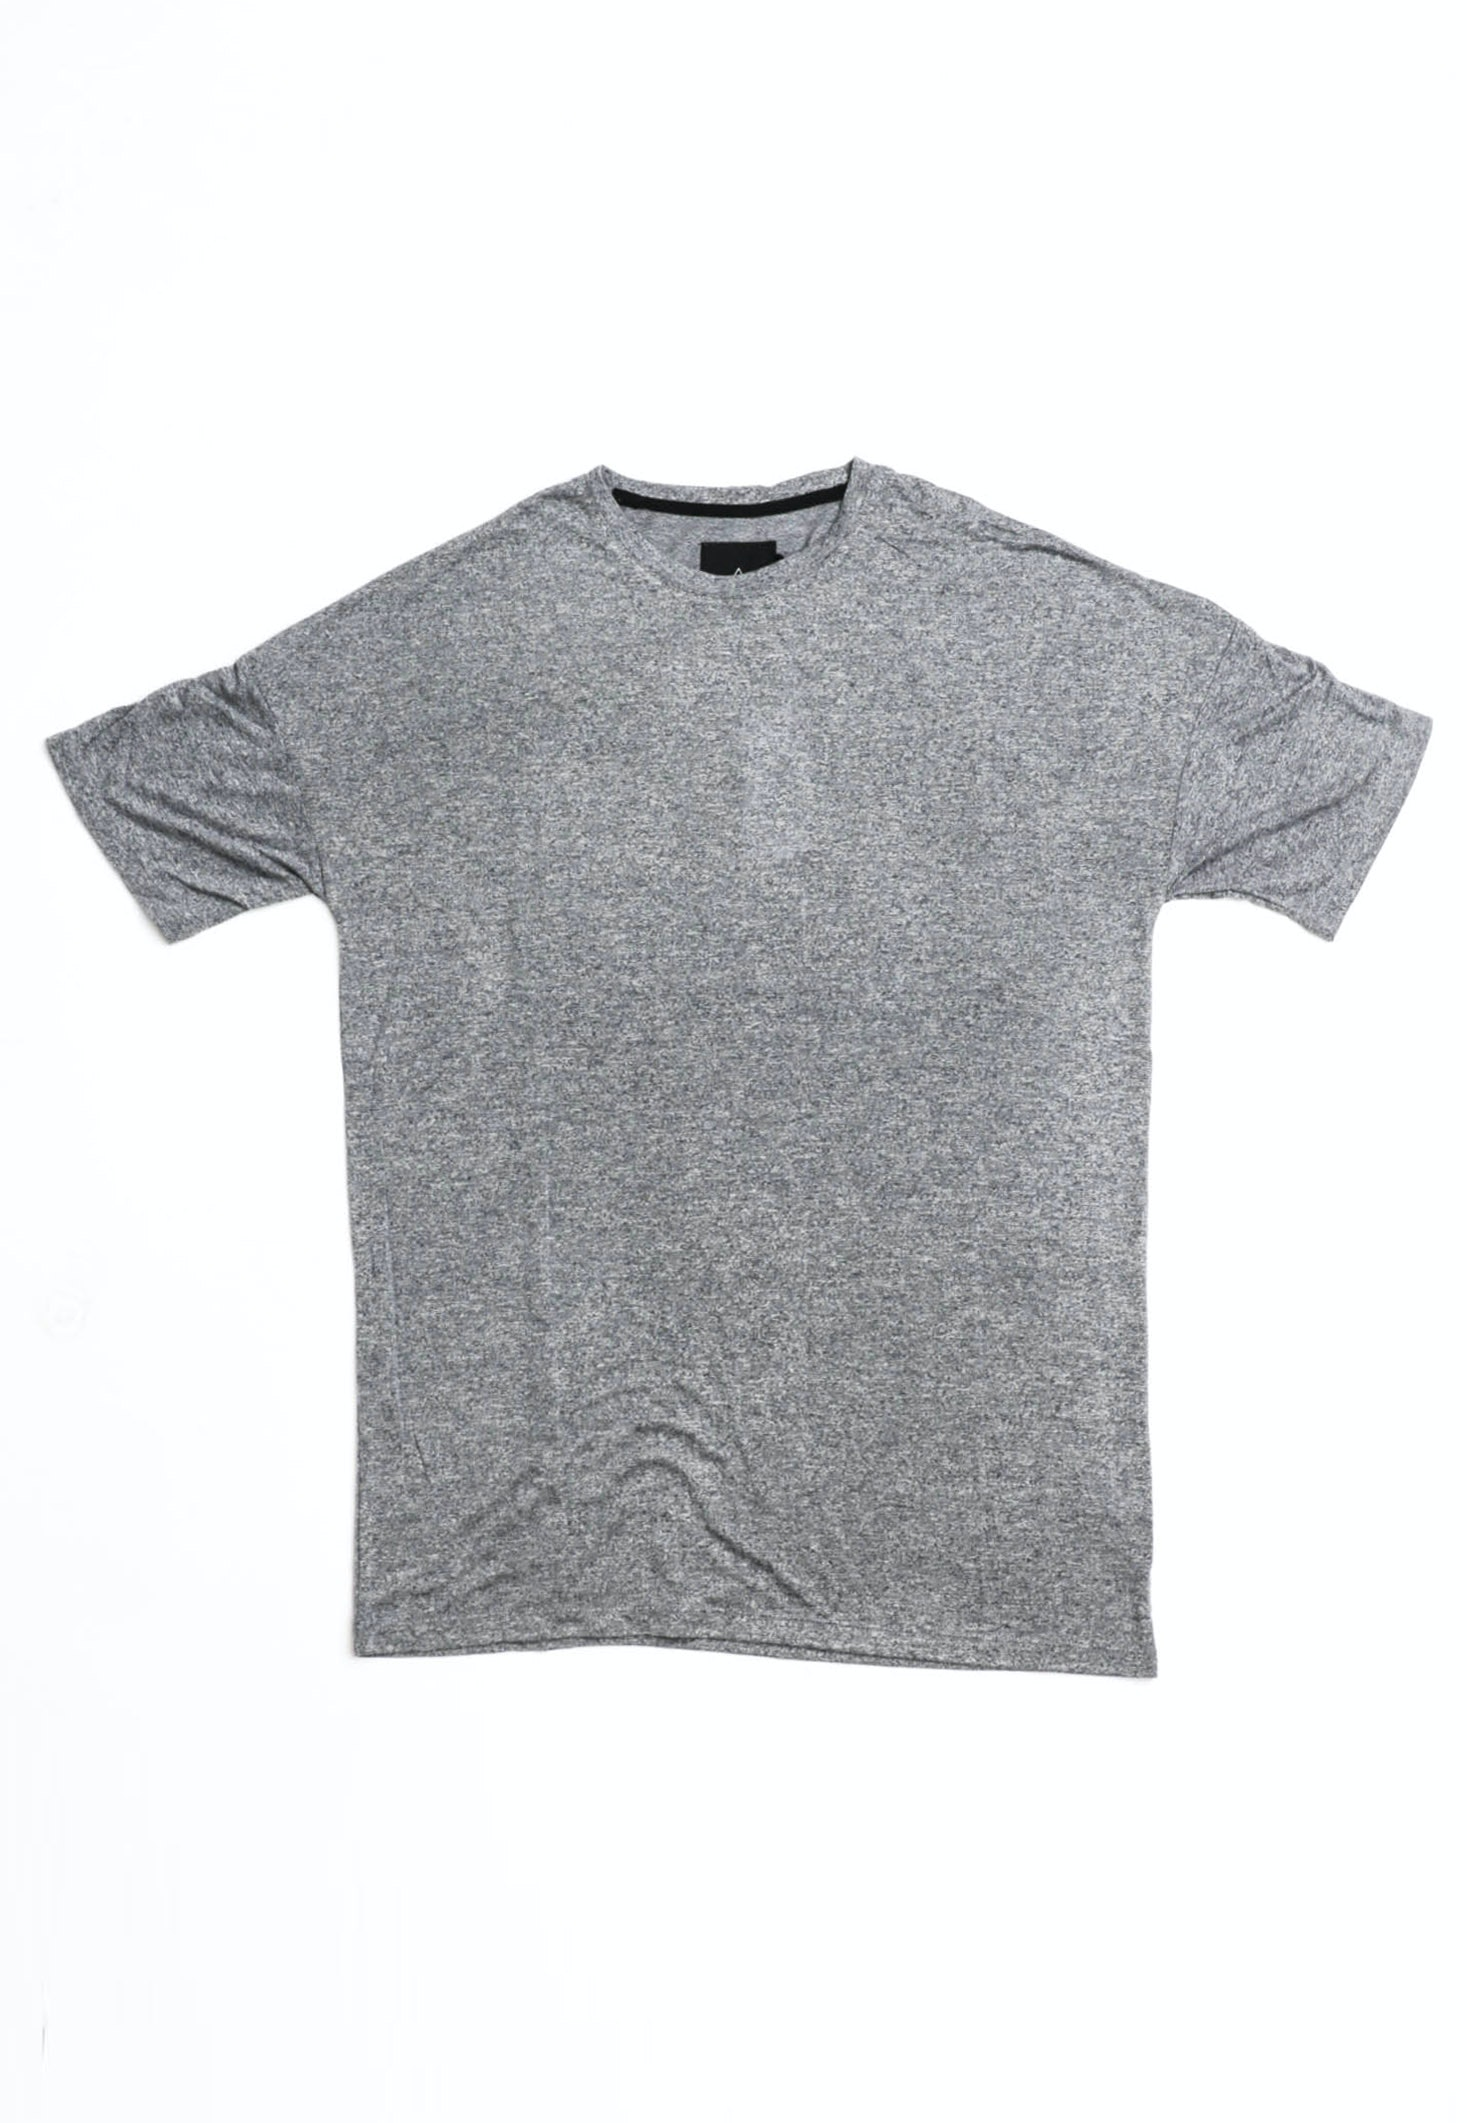 I Love Ugly - Lounge Tshirt - Speckle